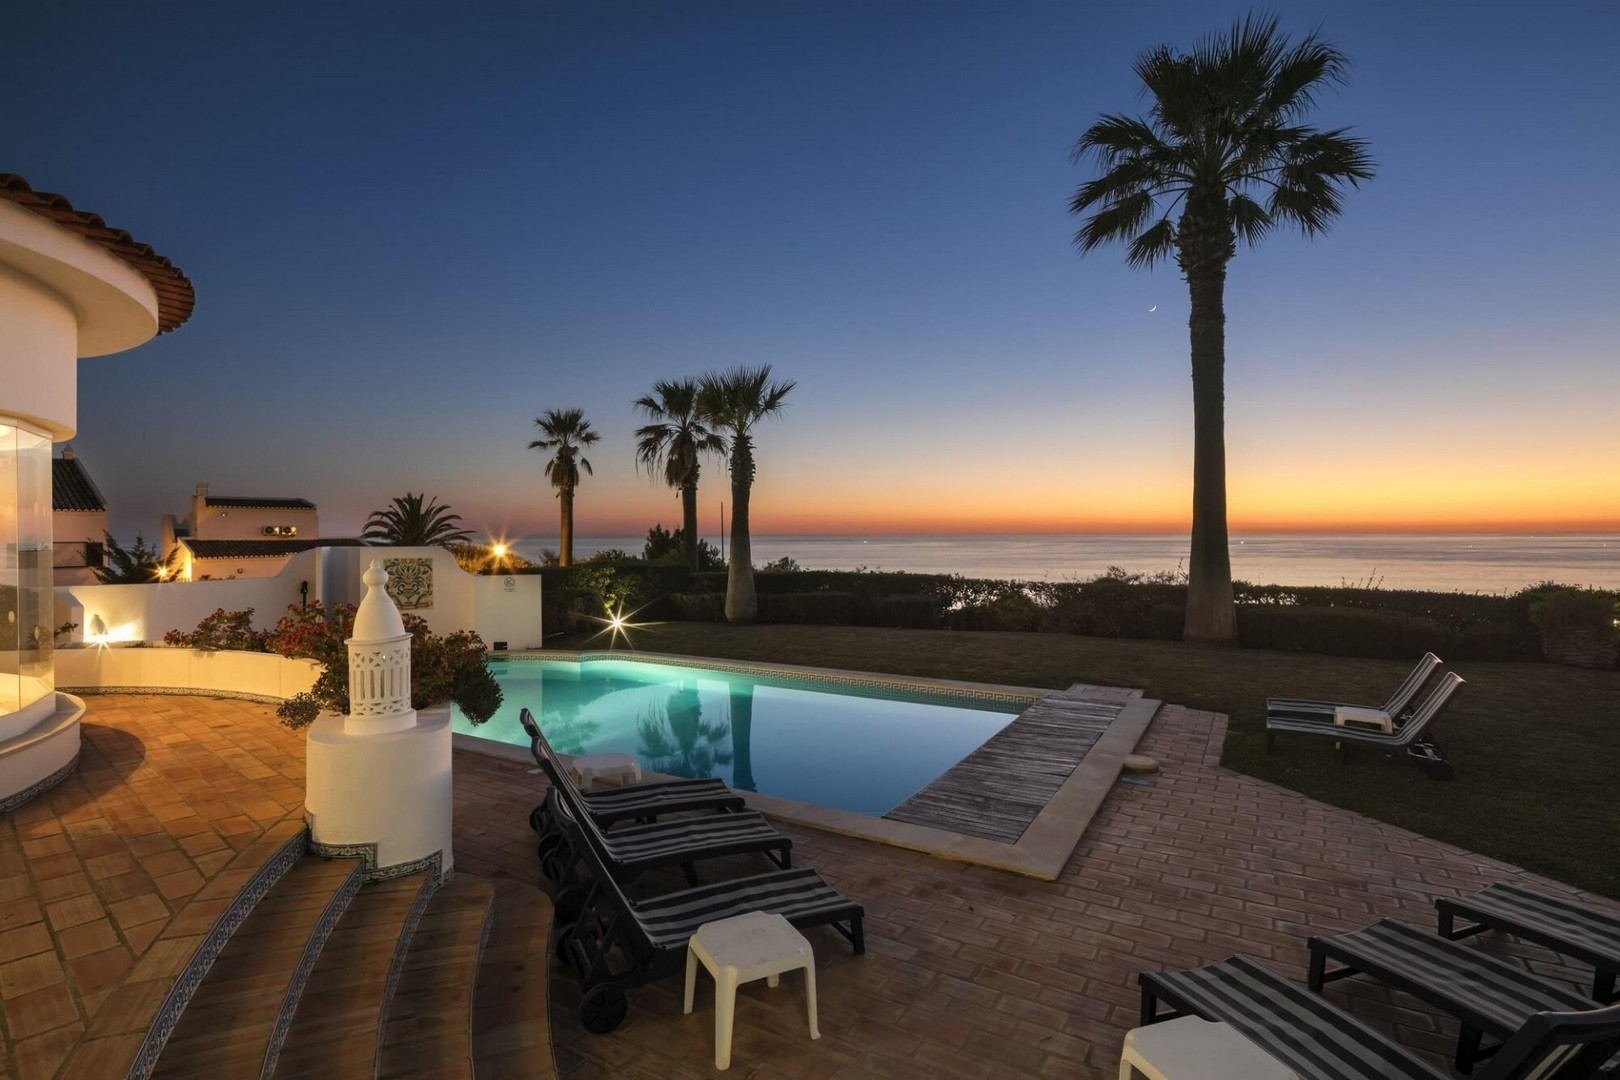 AH2349 - 5 Bedroom South Facing Vale Do Lobo Villa with Ocean Views